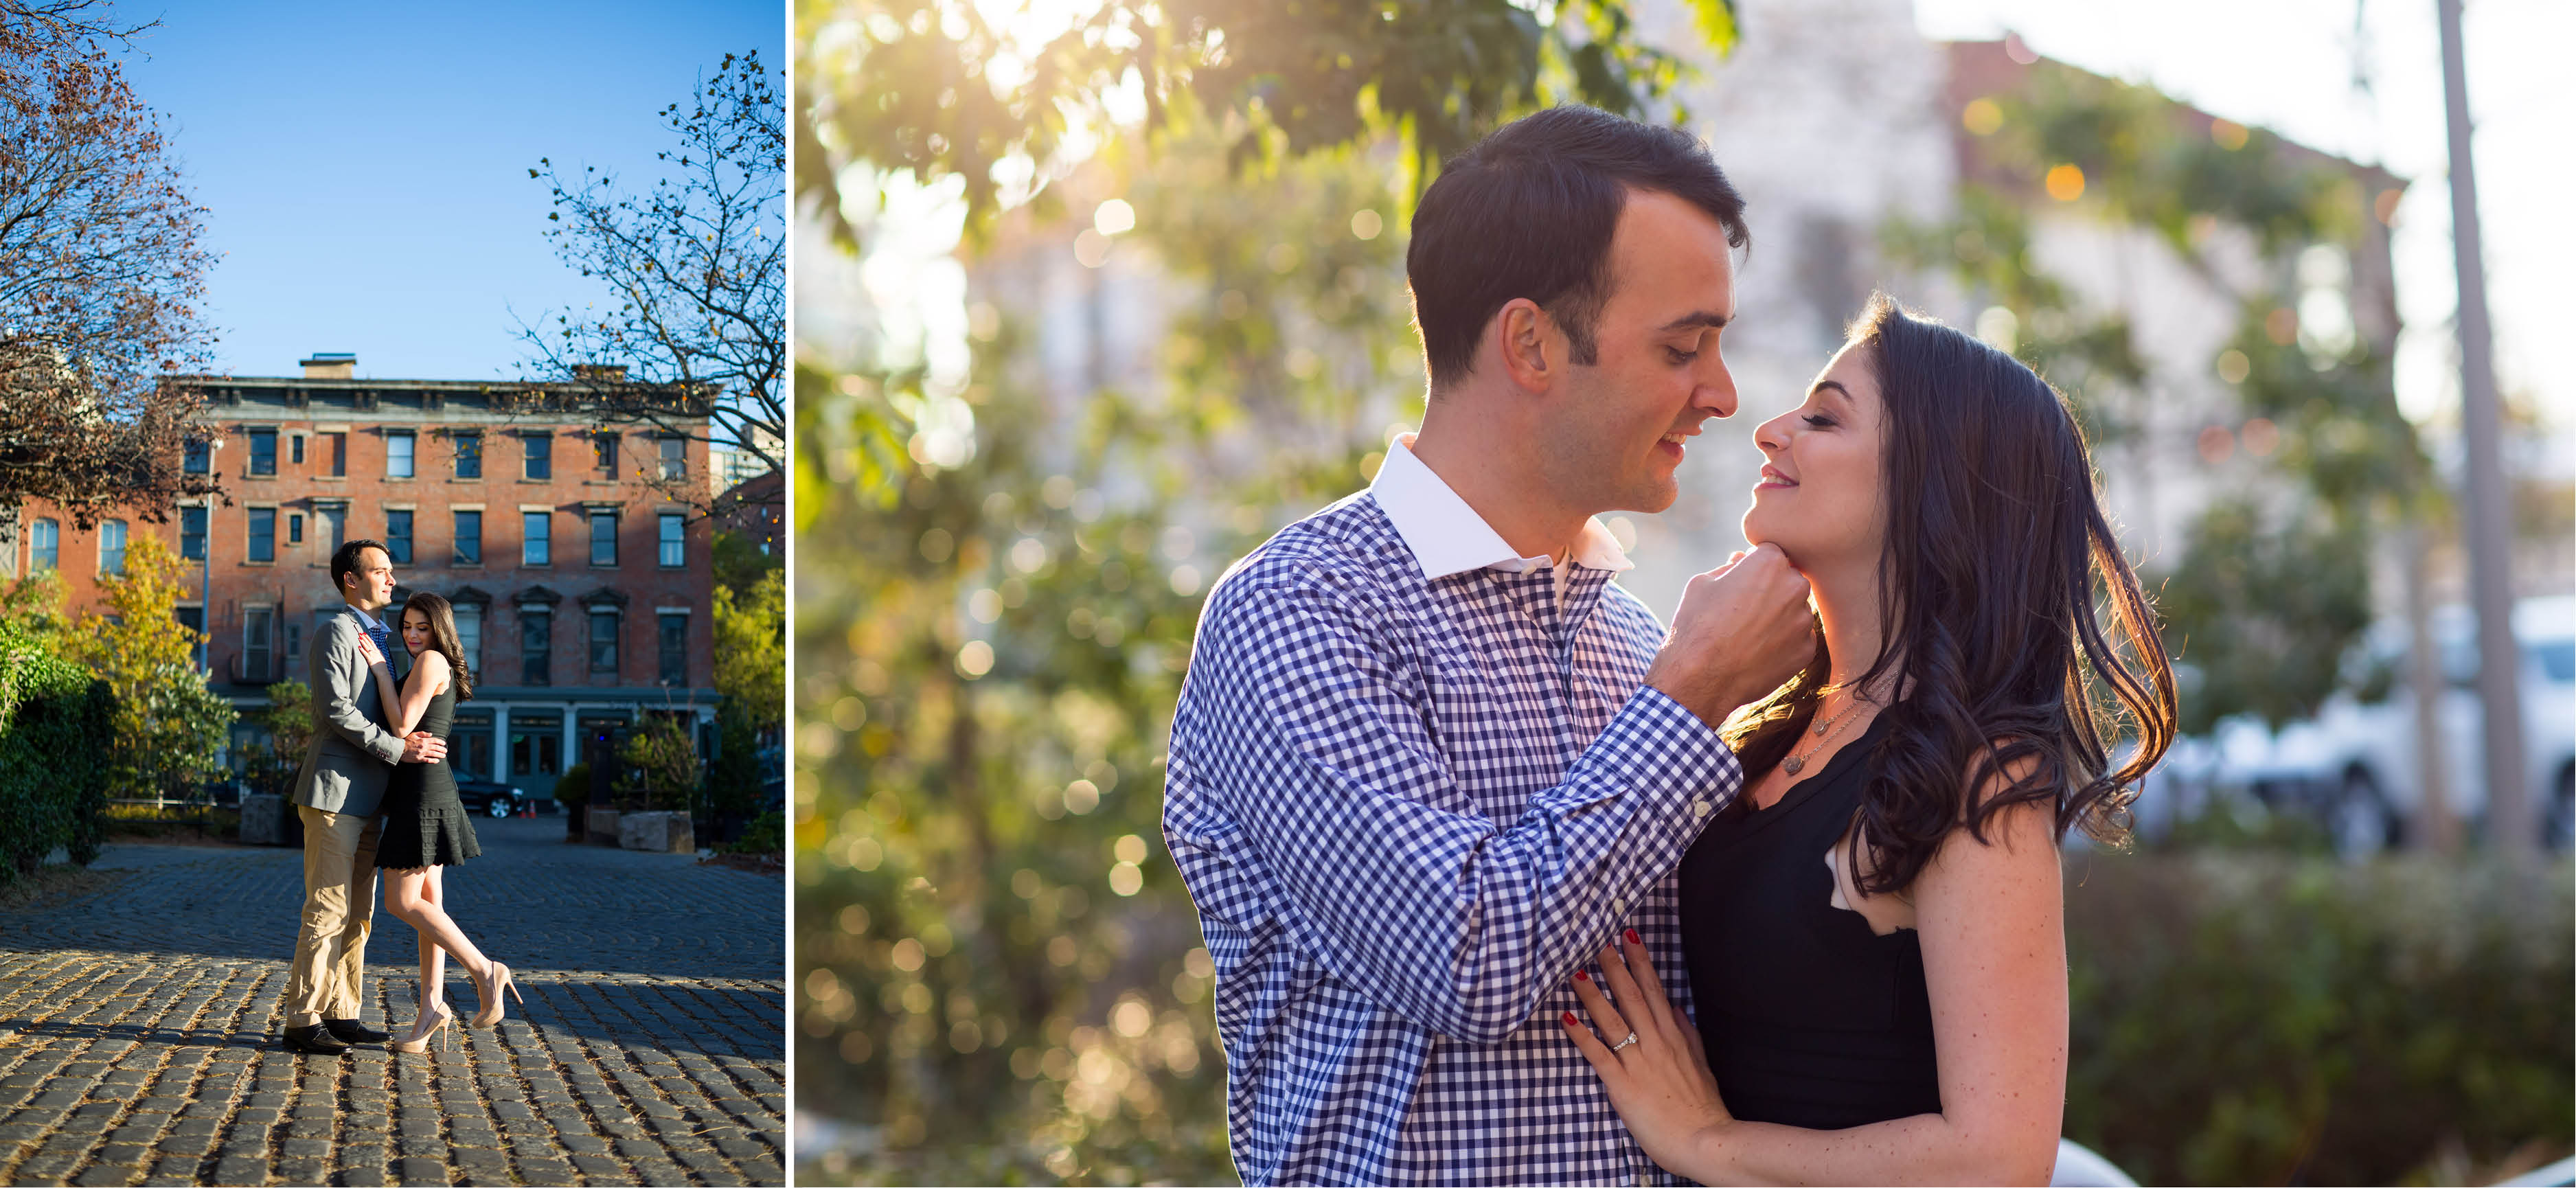 Emma_cleary_photography Dumbo Engagement shoot4